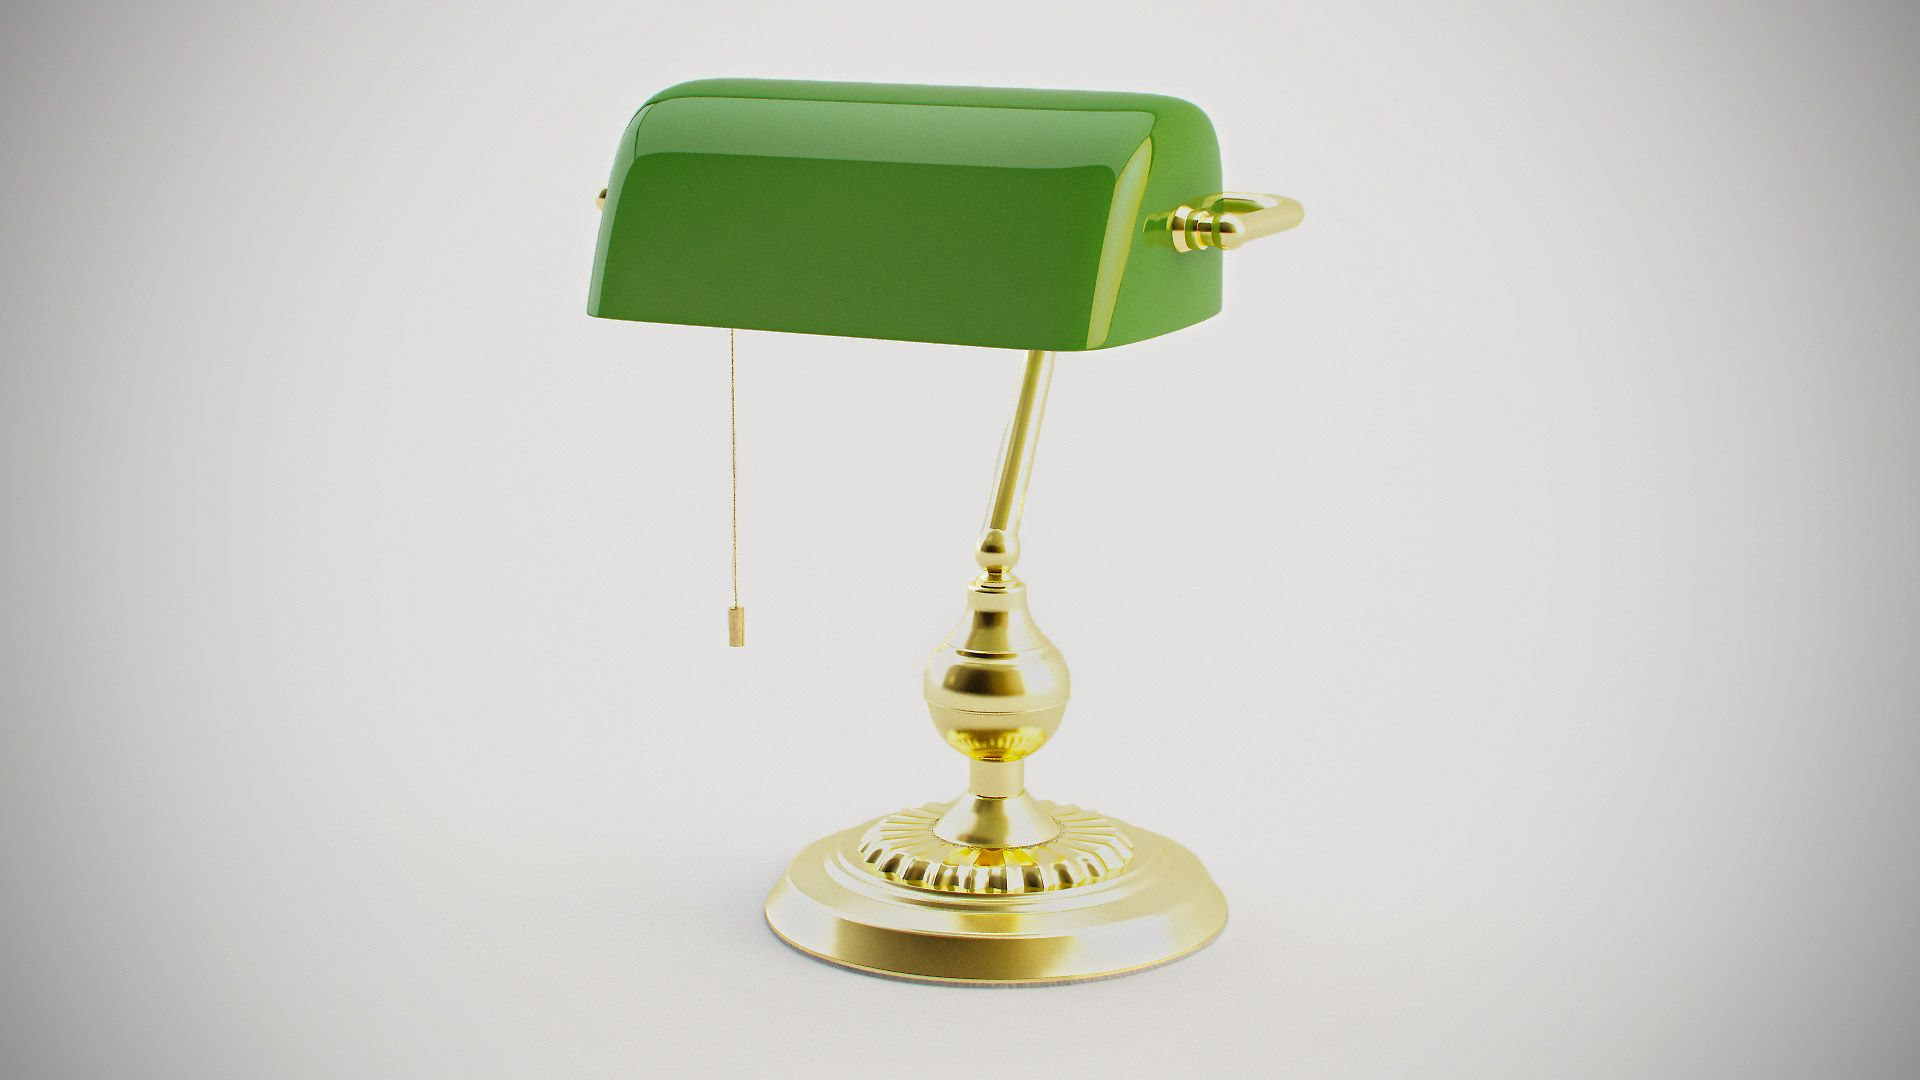 p table international lamp ore bankers in kt green gold lamps the